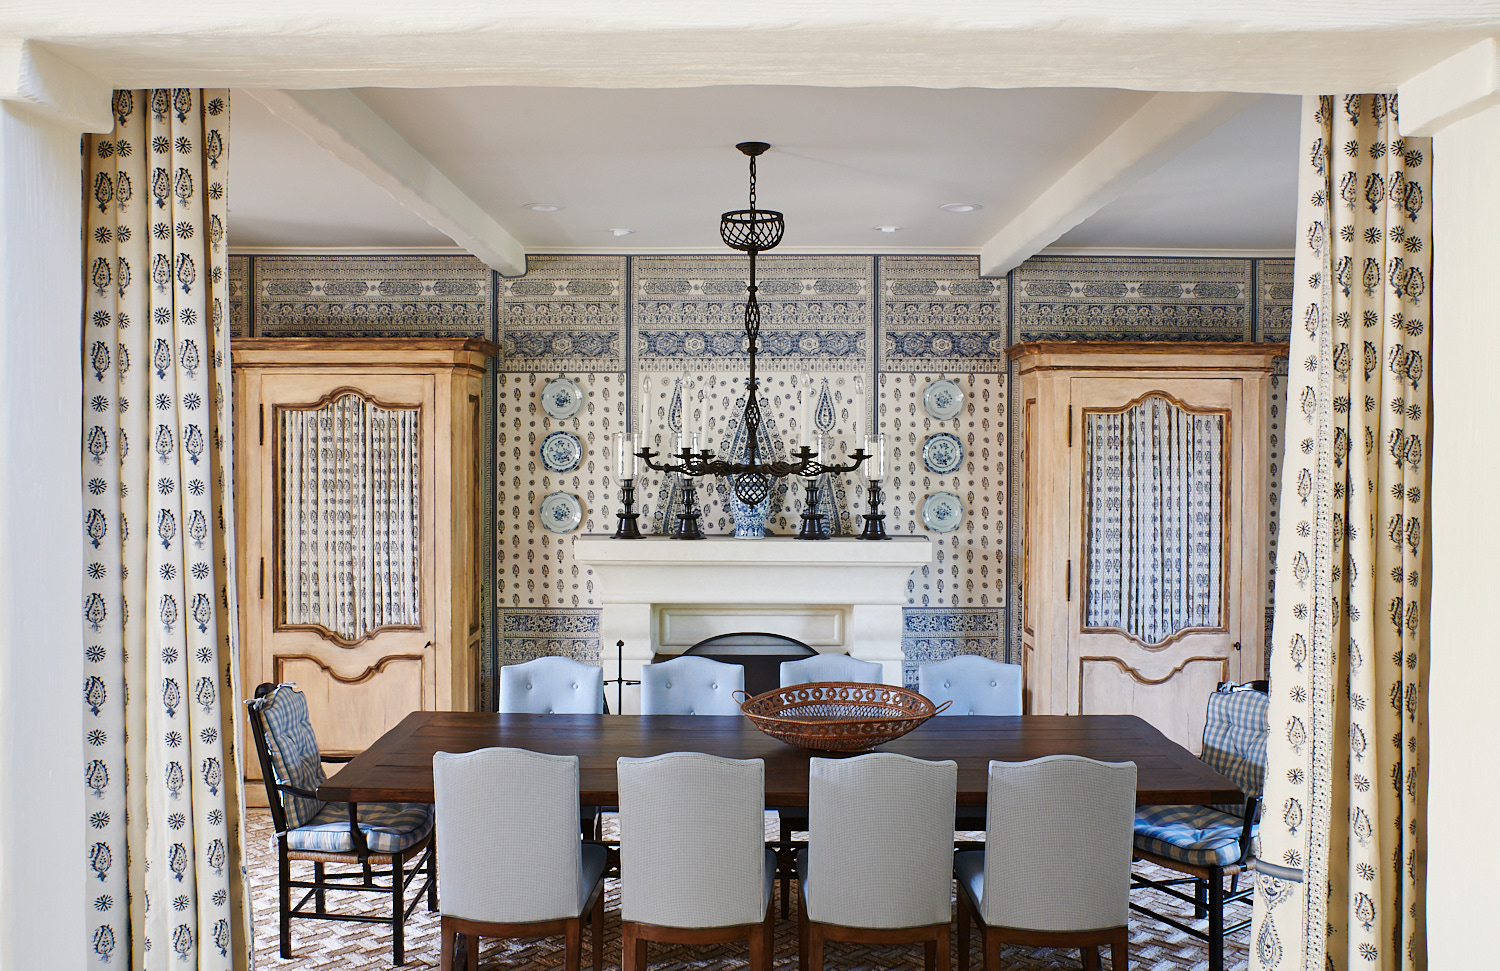 Armoire with paisley-patterned covers, tufted dining room chairs, and space-sectioning drapery